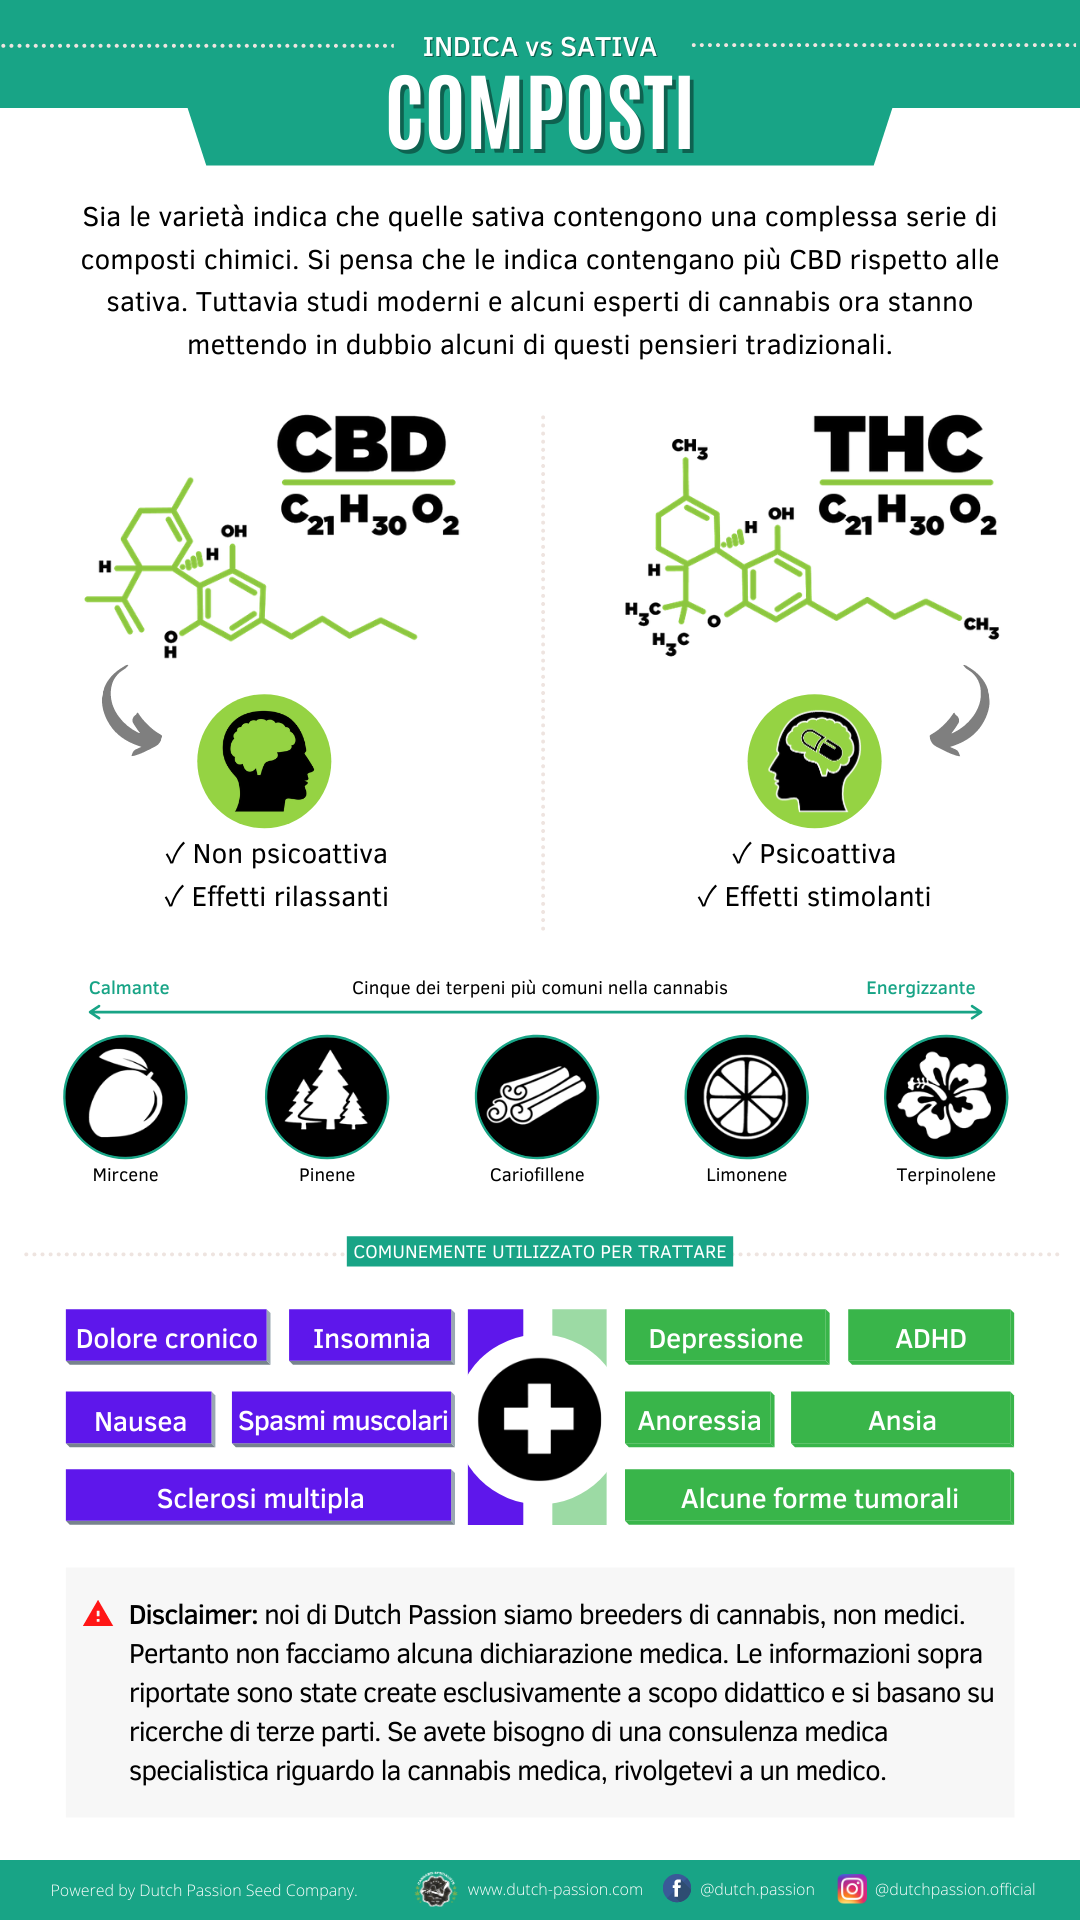 Indica vs Sativa compounds